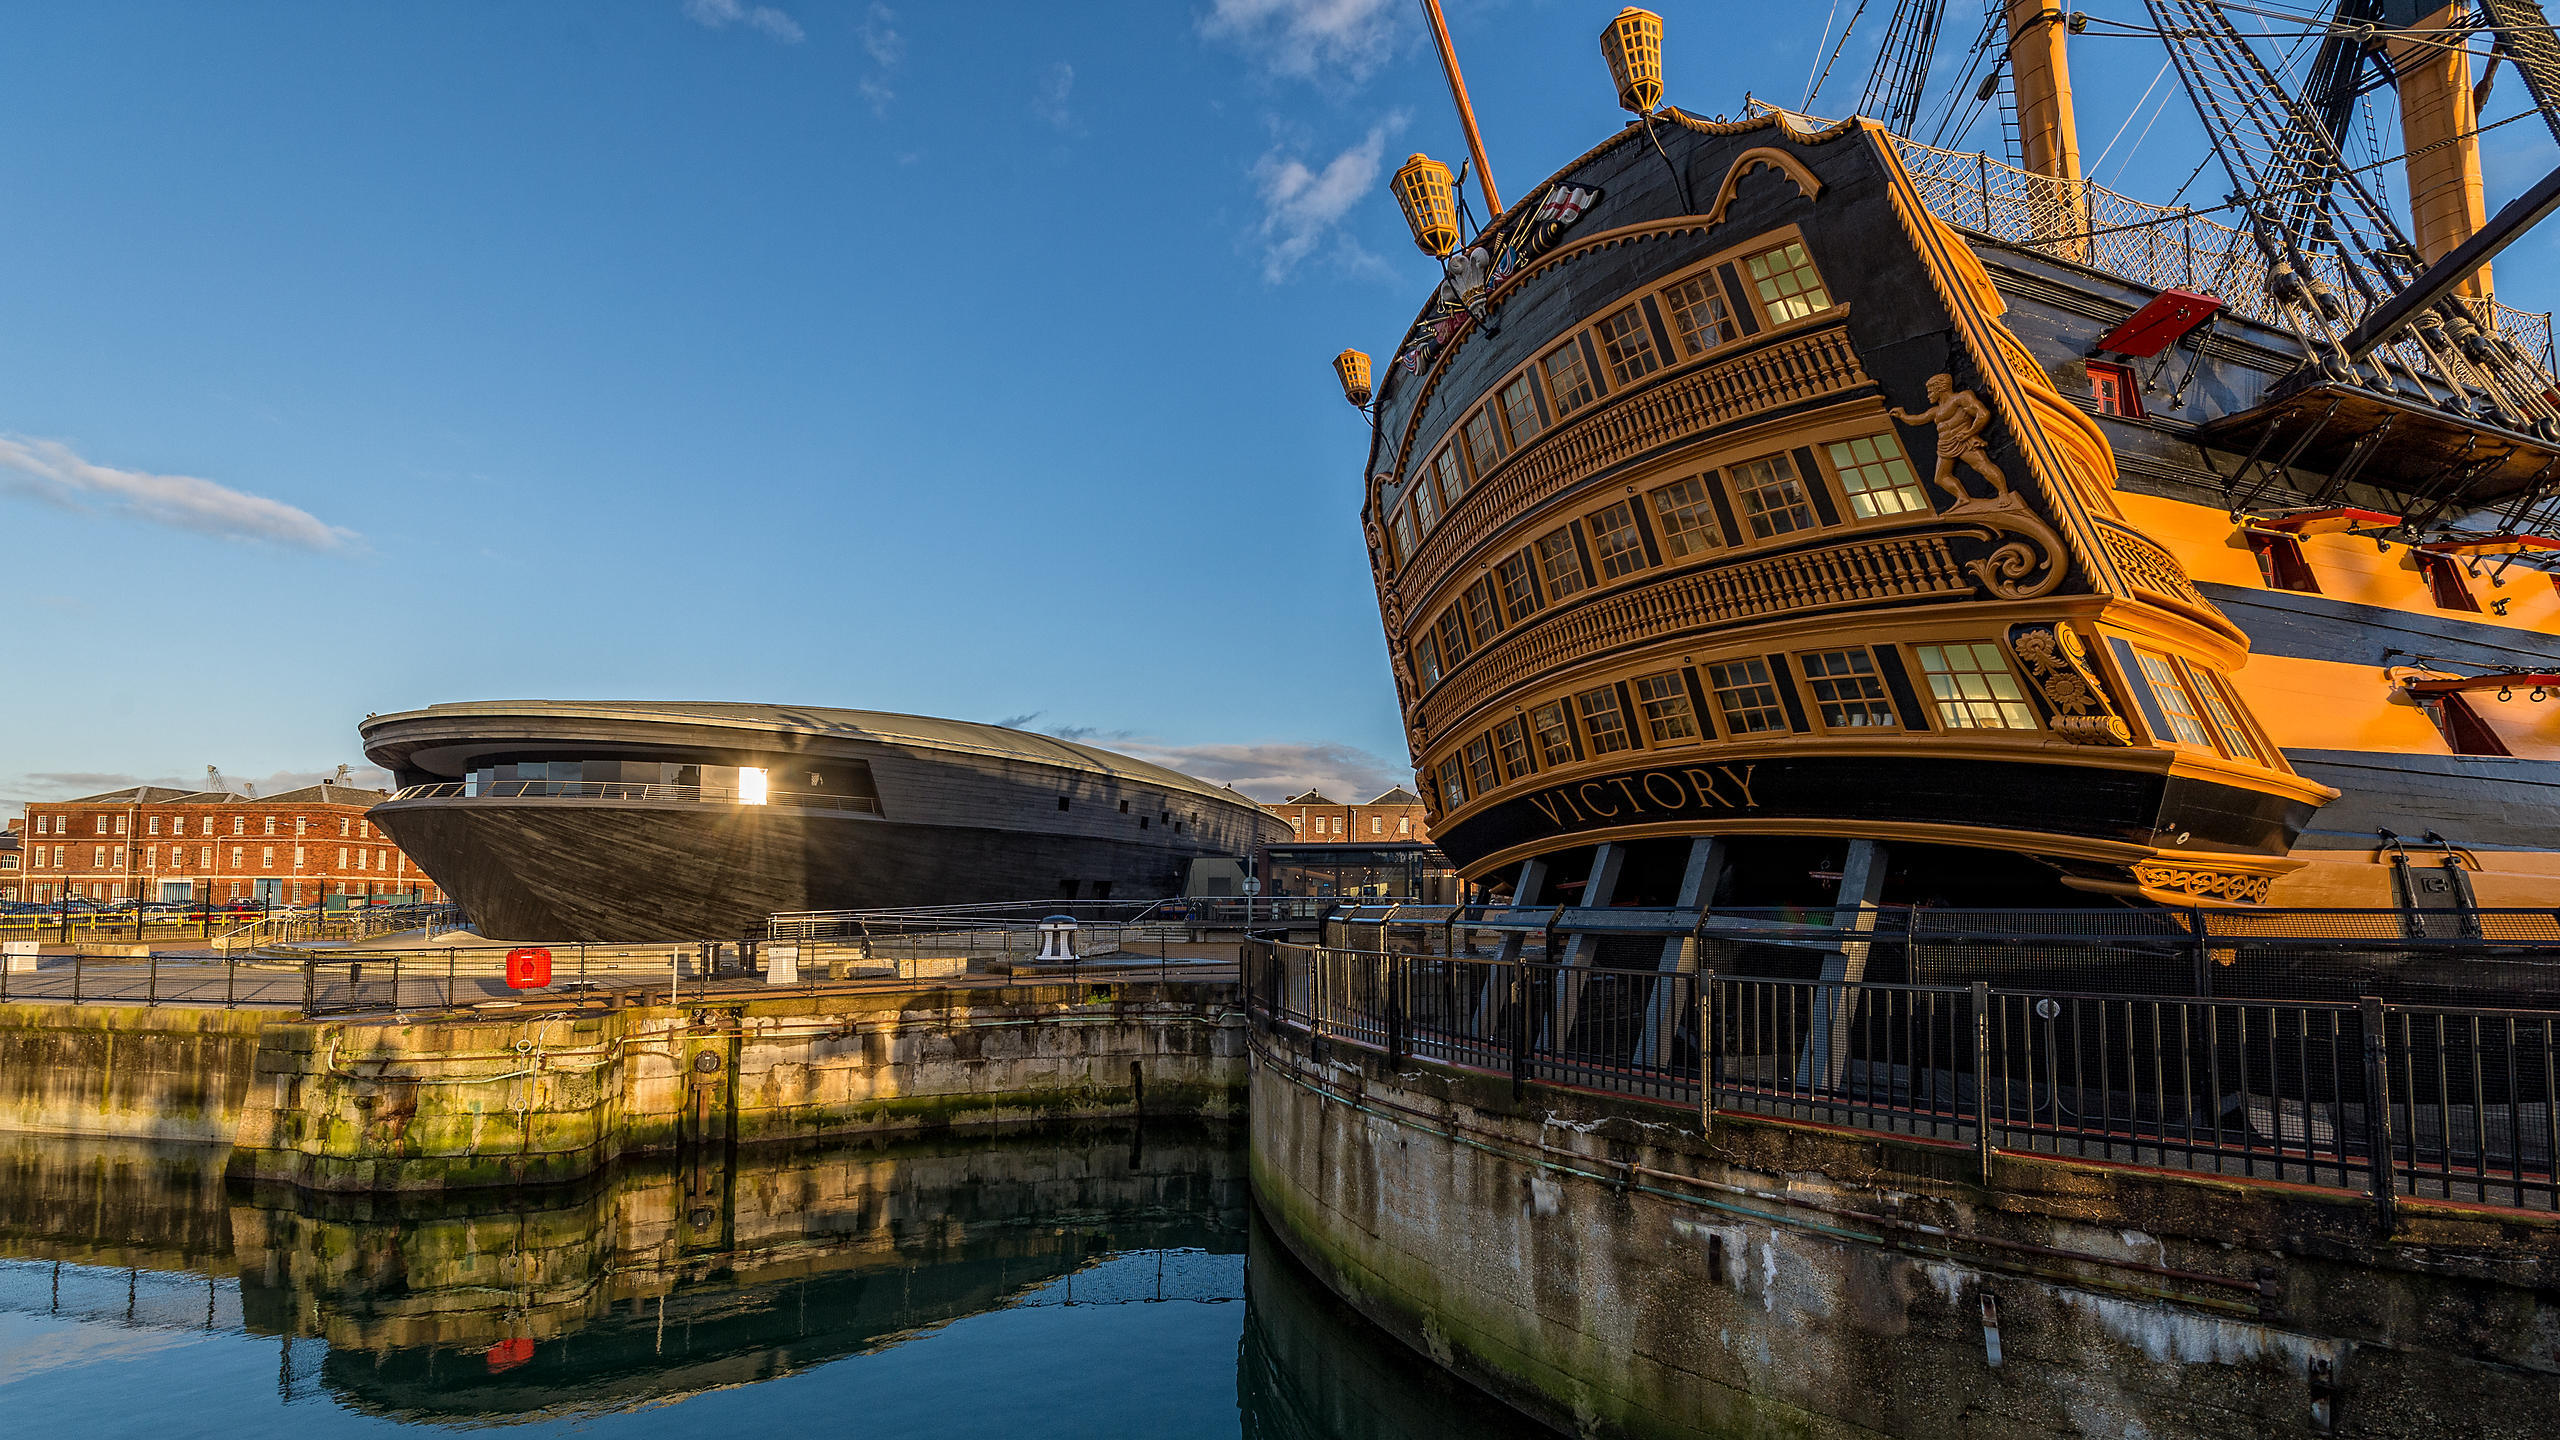 Portsmouth Historic Dockyard photos